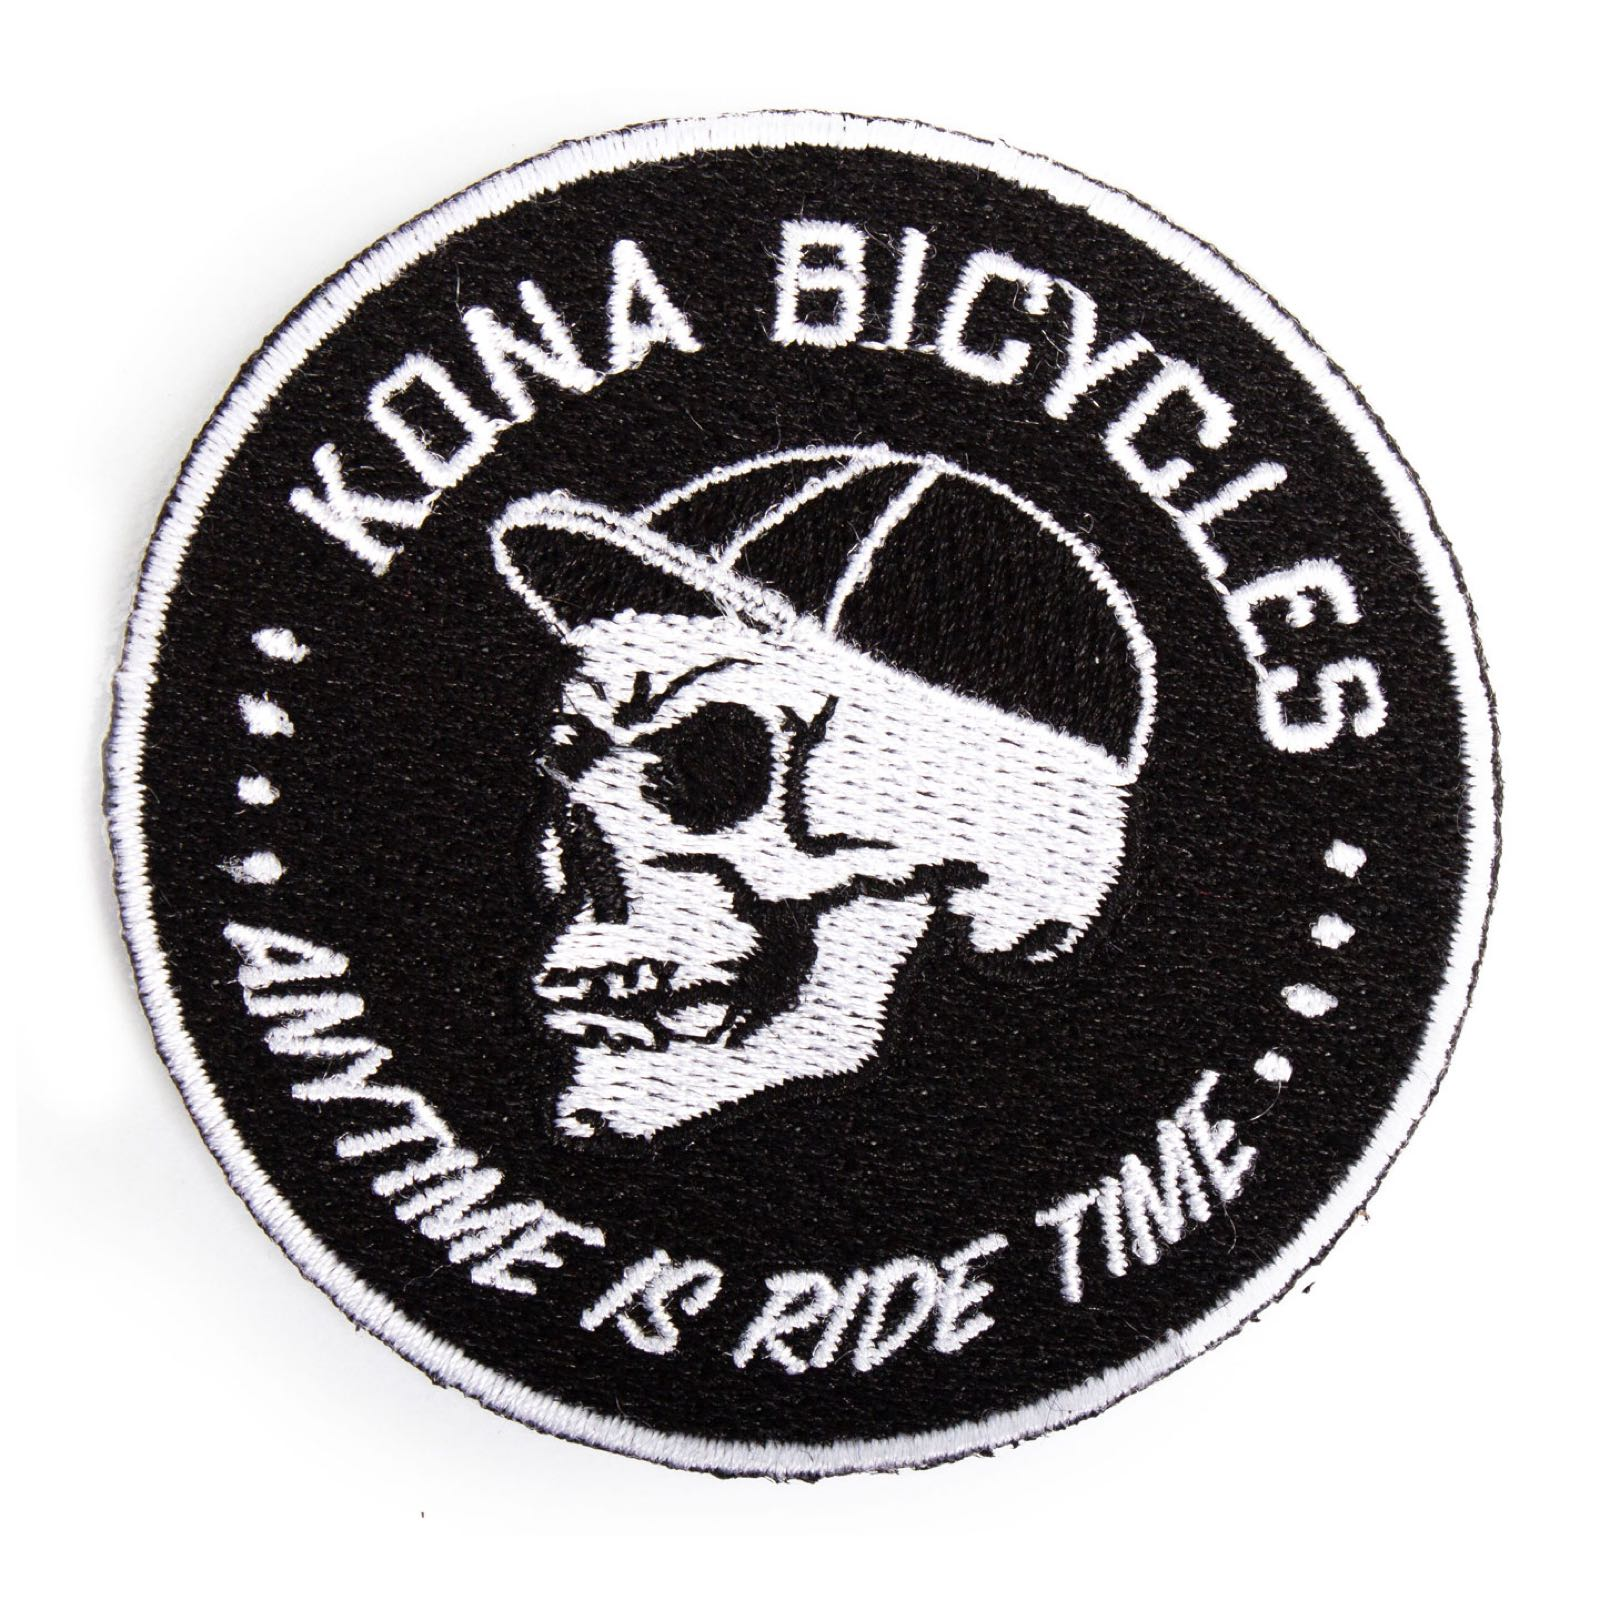 Kona patch